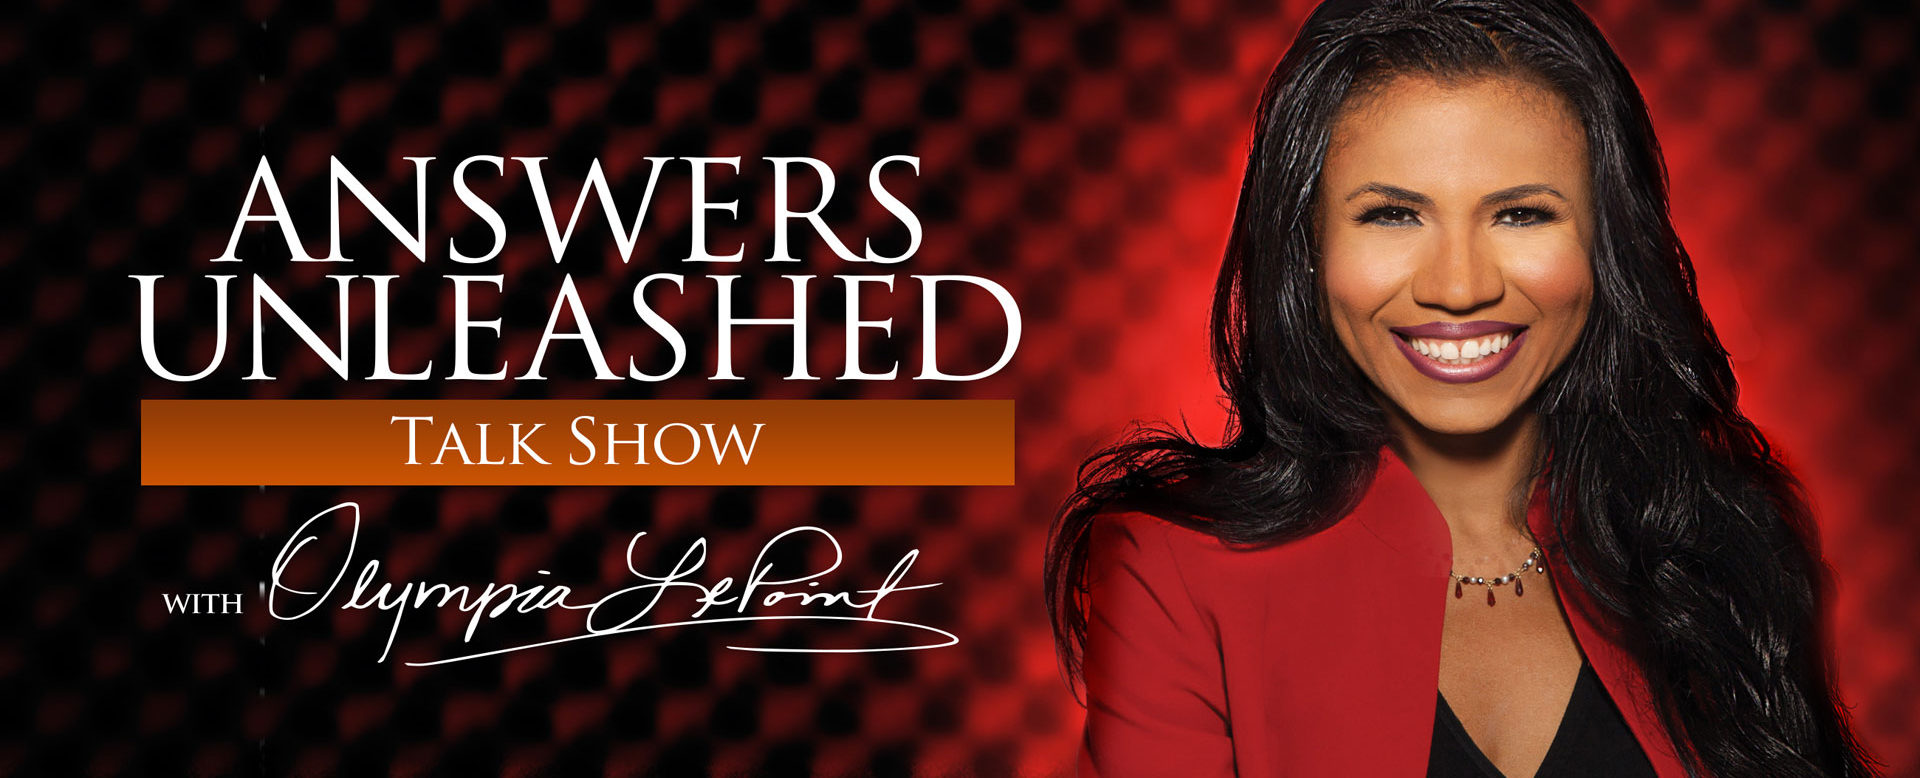 Answers Unleashed Talk Show with Olympia LePoint